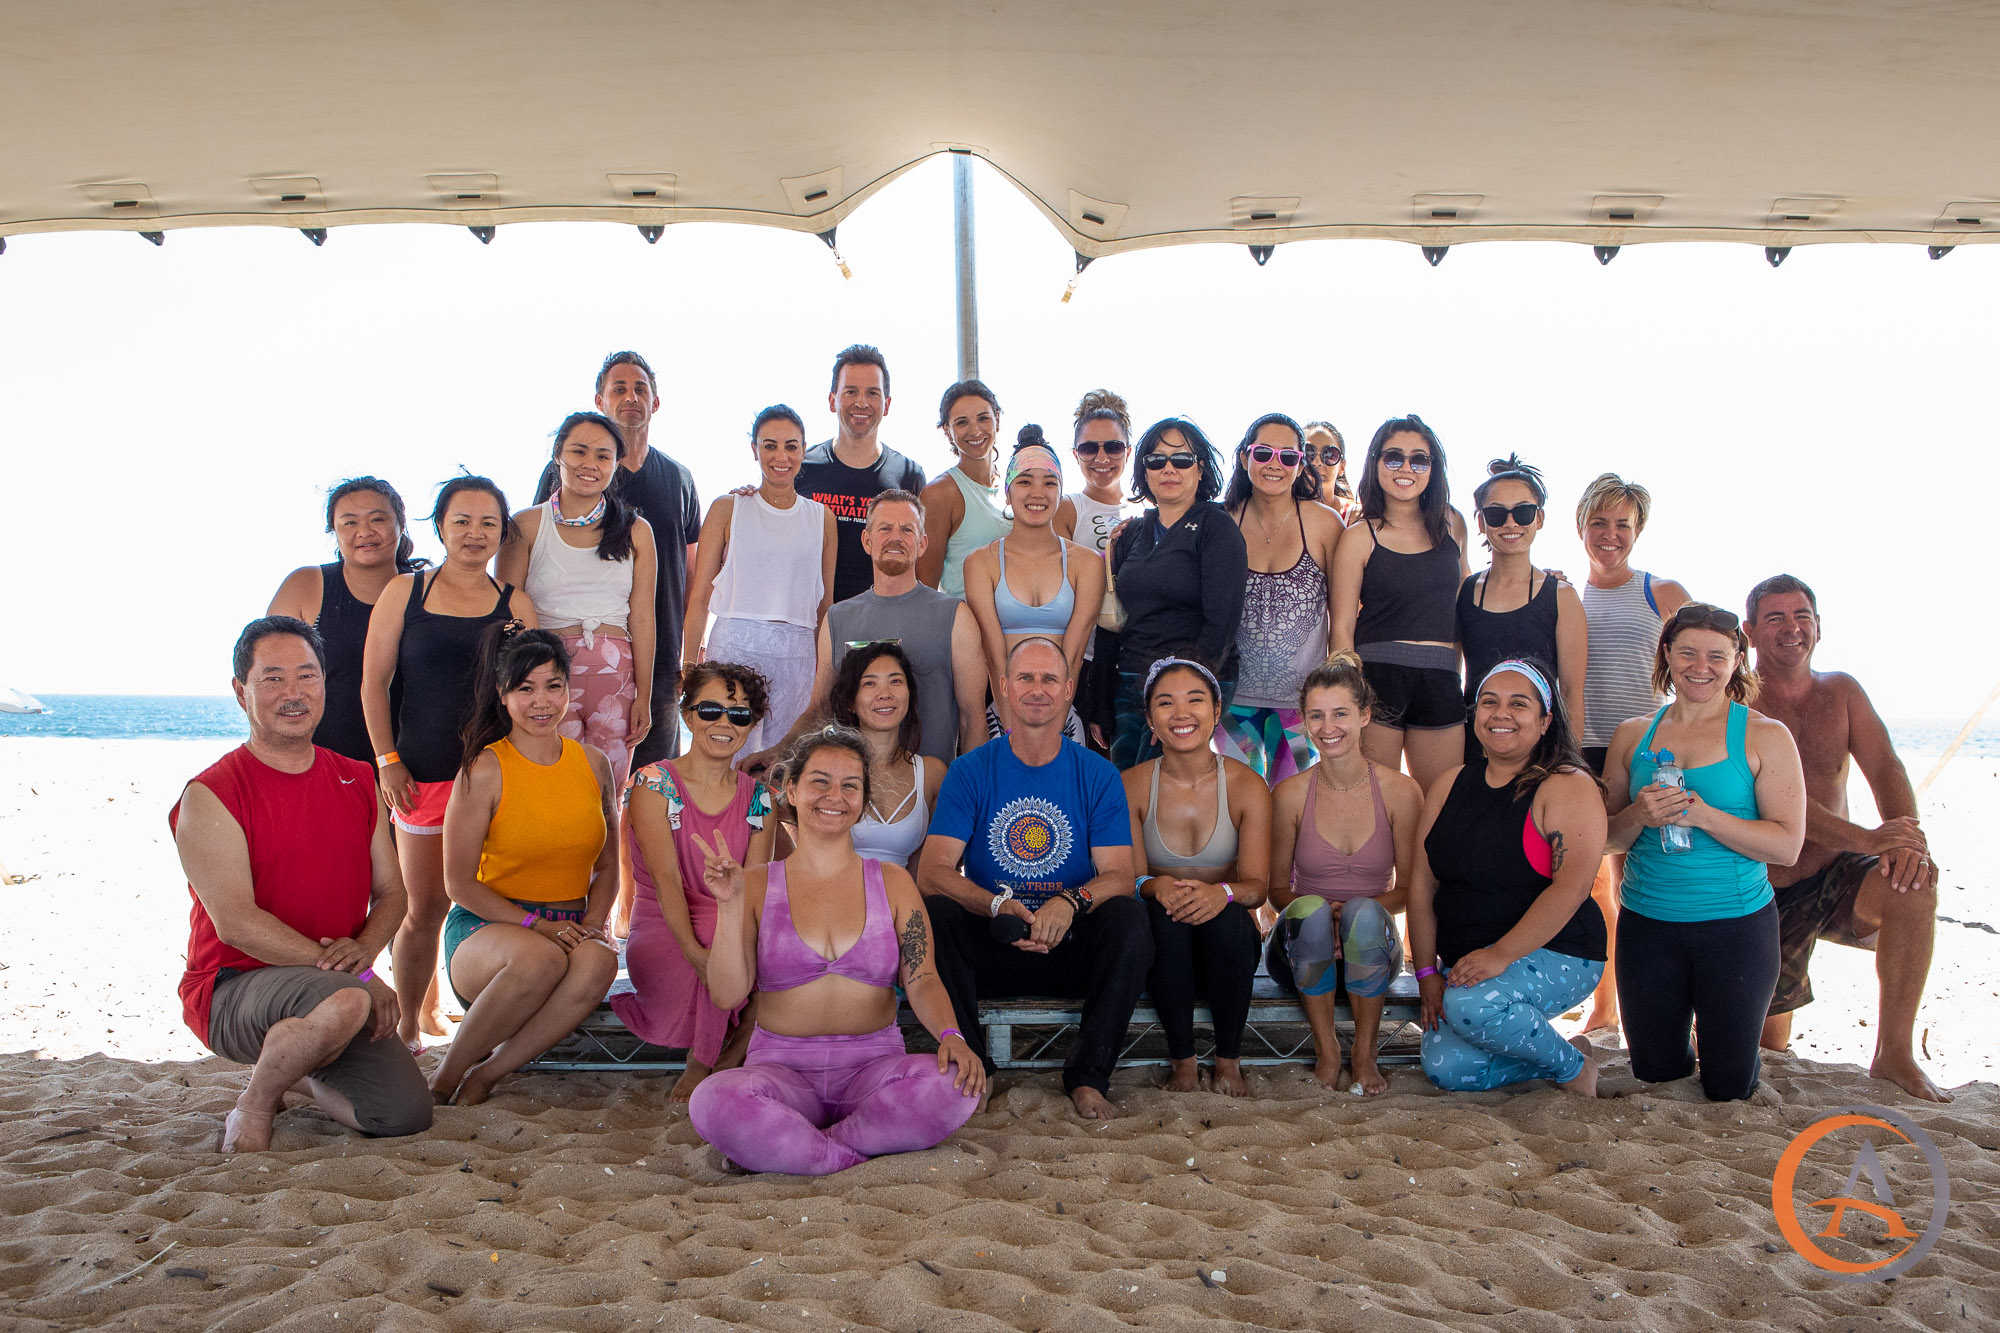 OC Yoga Festival Huntington Beach, CA July 2019